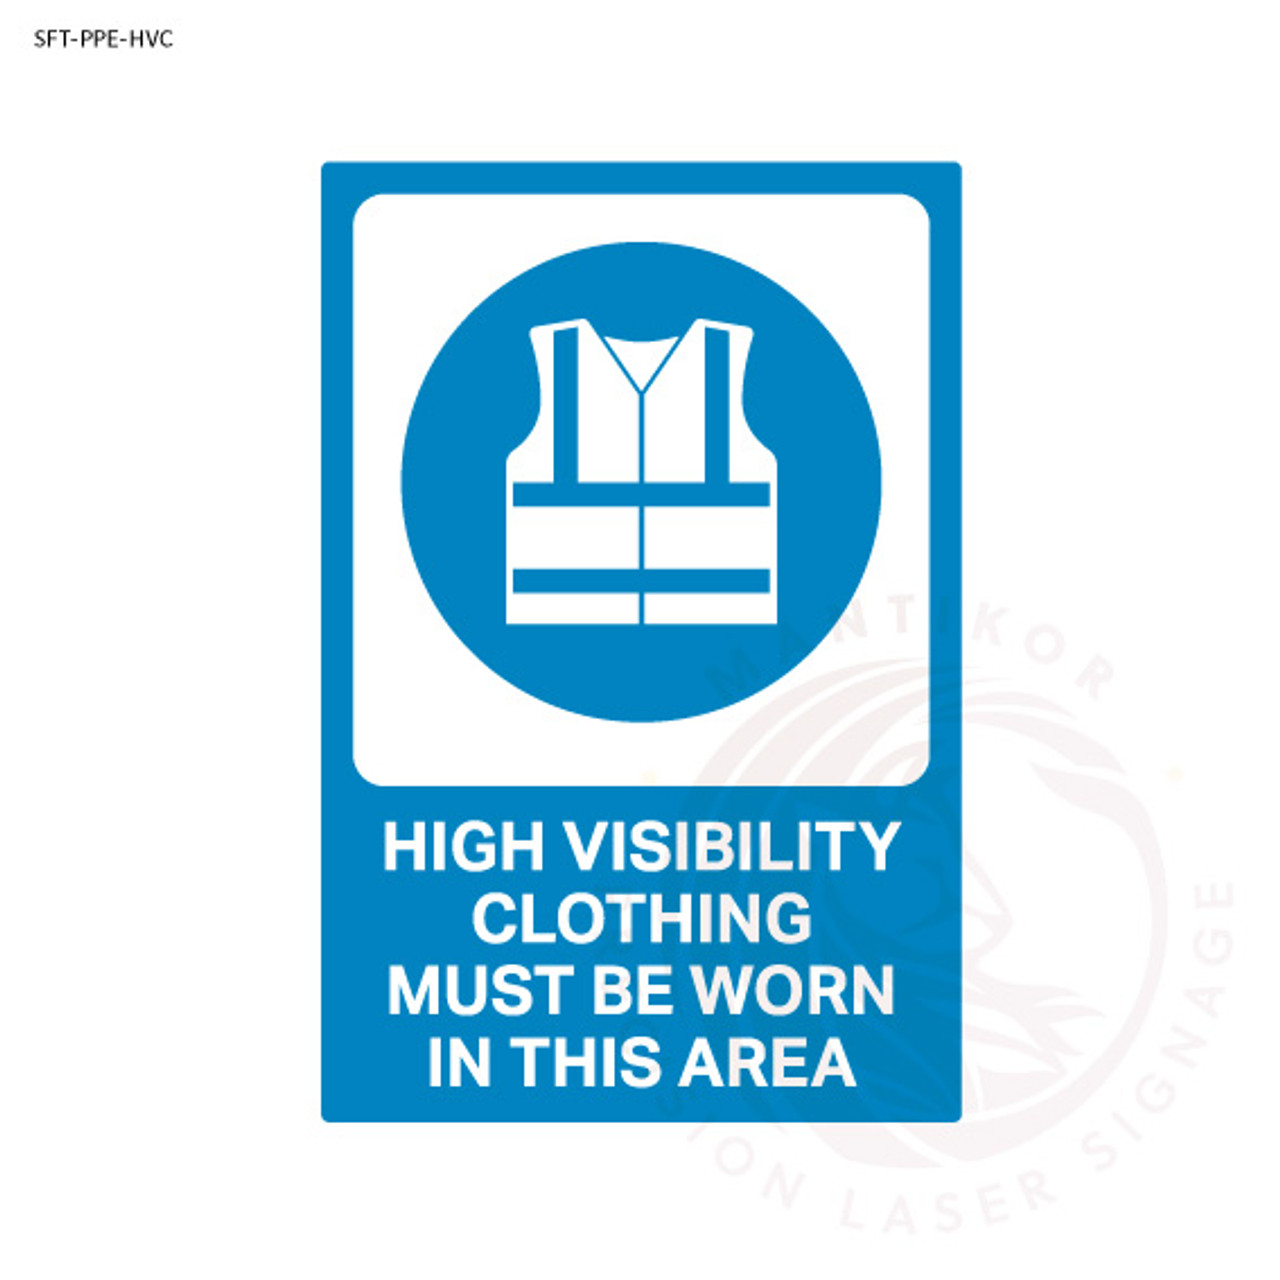 PPE Safety Signage - High visibility clothing must be worn in this area